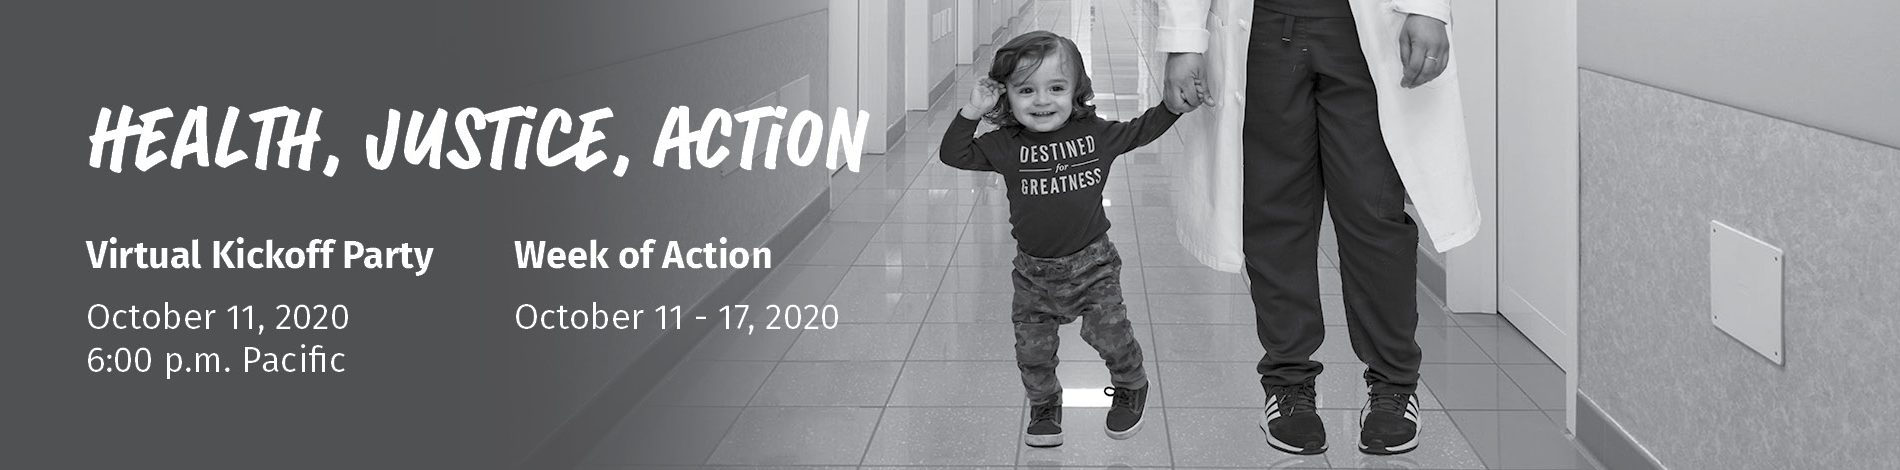 Venice Family Clinic - Health, Justice, Action: The Kickoff Party